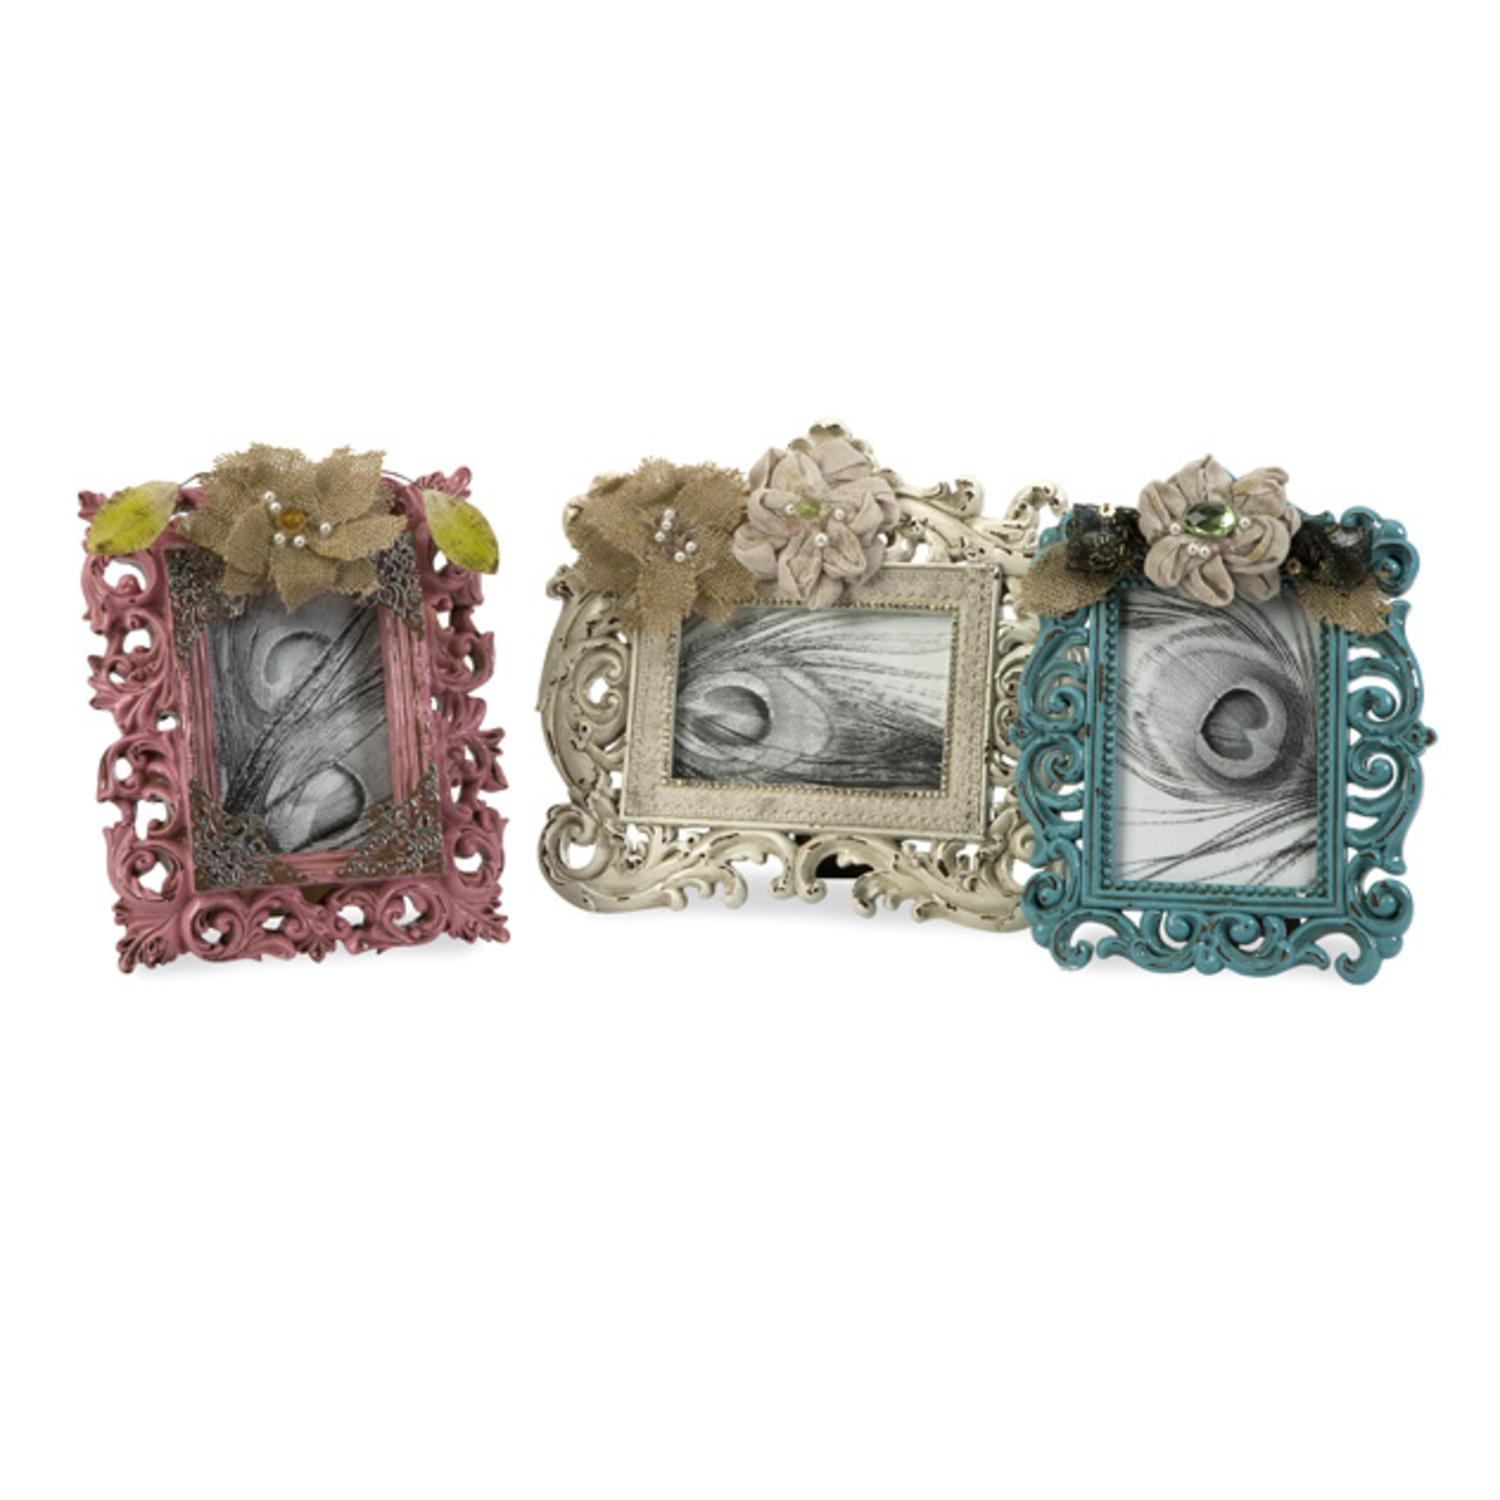 "Set of 3 Decadently Styled Floral Burlap 4"" x 6"" Photo Picture Frames"